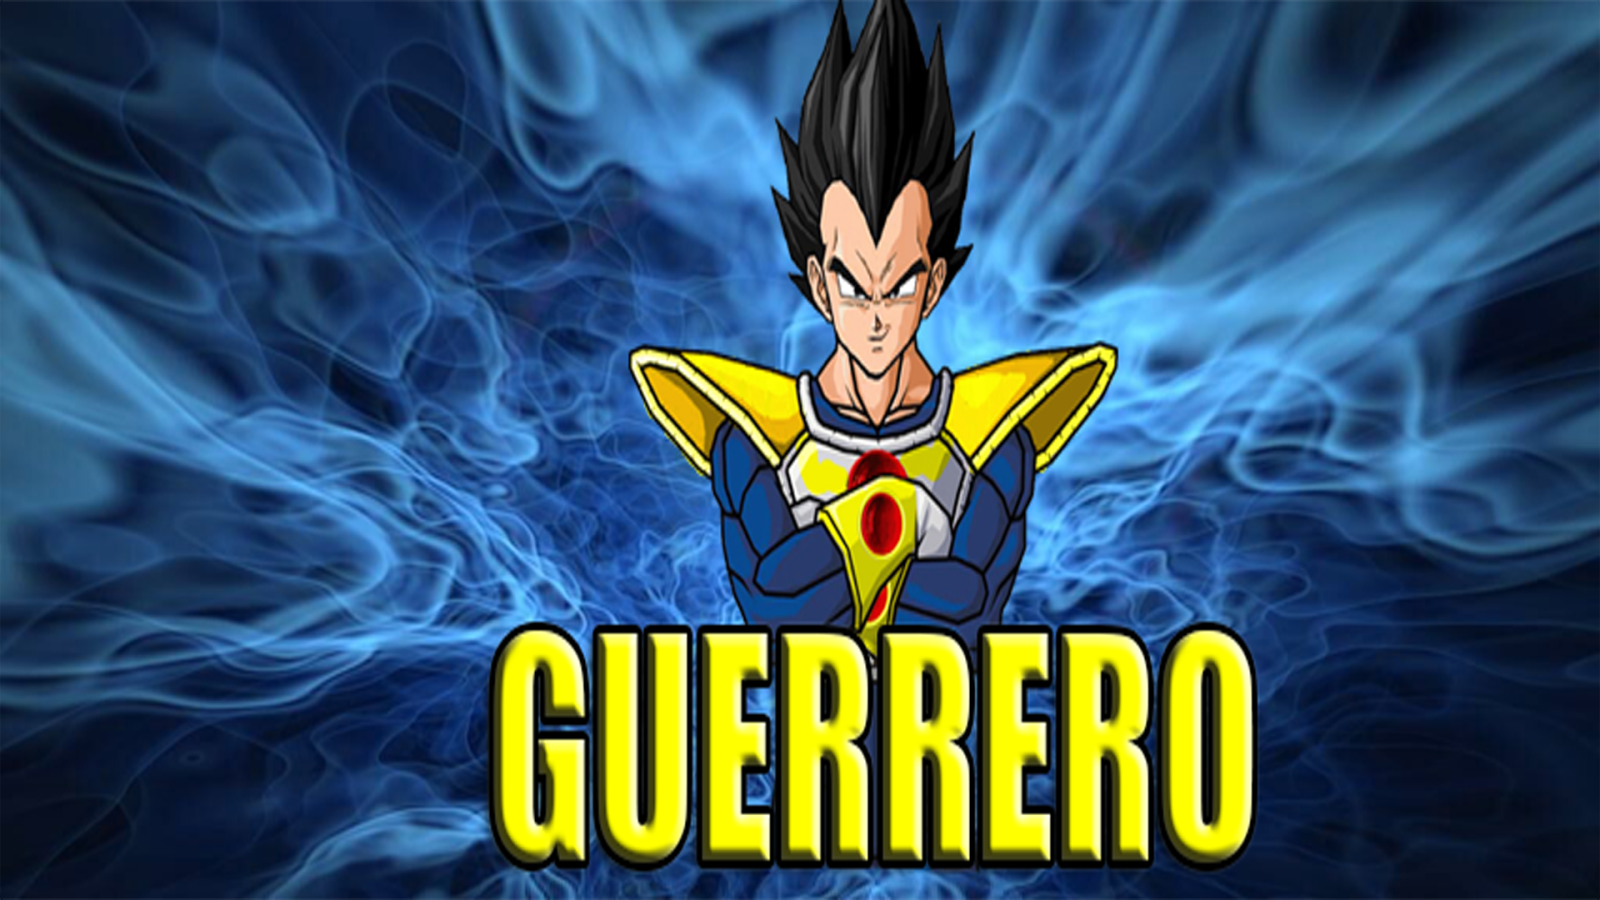 (model sin amxx) Goku GT niño, normal, ssj y ssj3 2r7bjb7